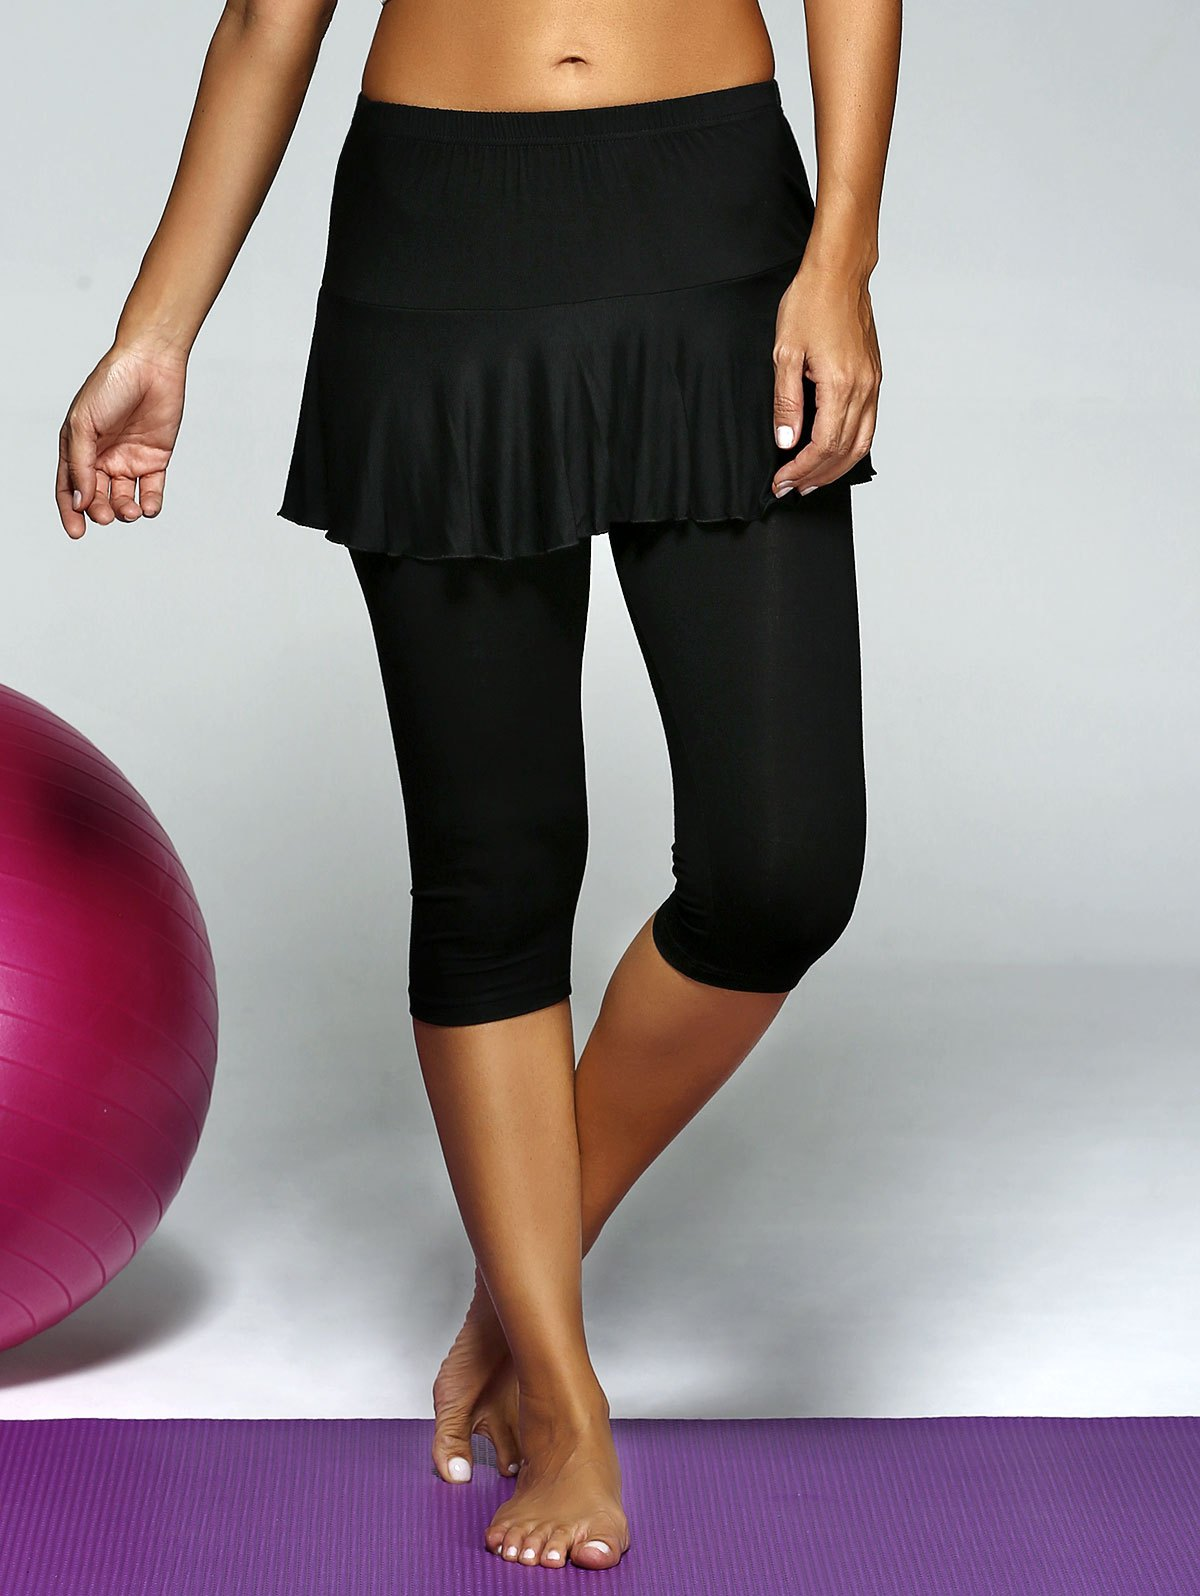 Elastic Waist Skinny Skirt Capri Gym PantsClothes<br><br><br>Size: L<br>Color: BLACK